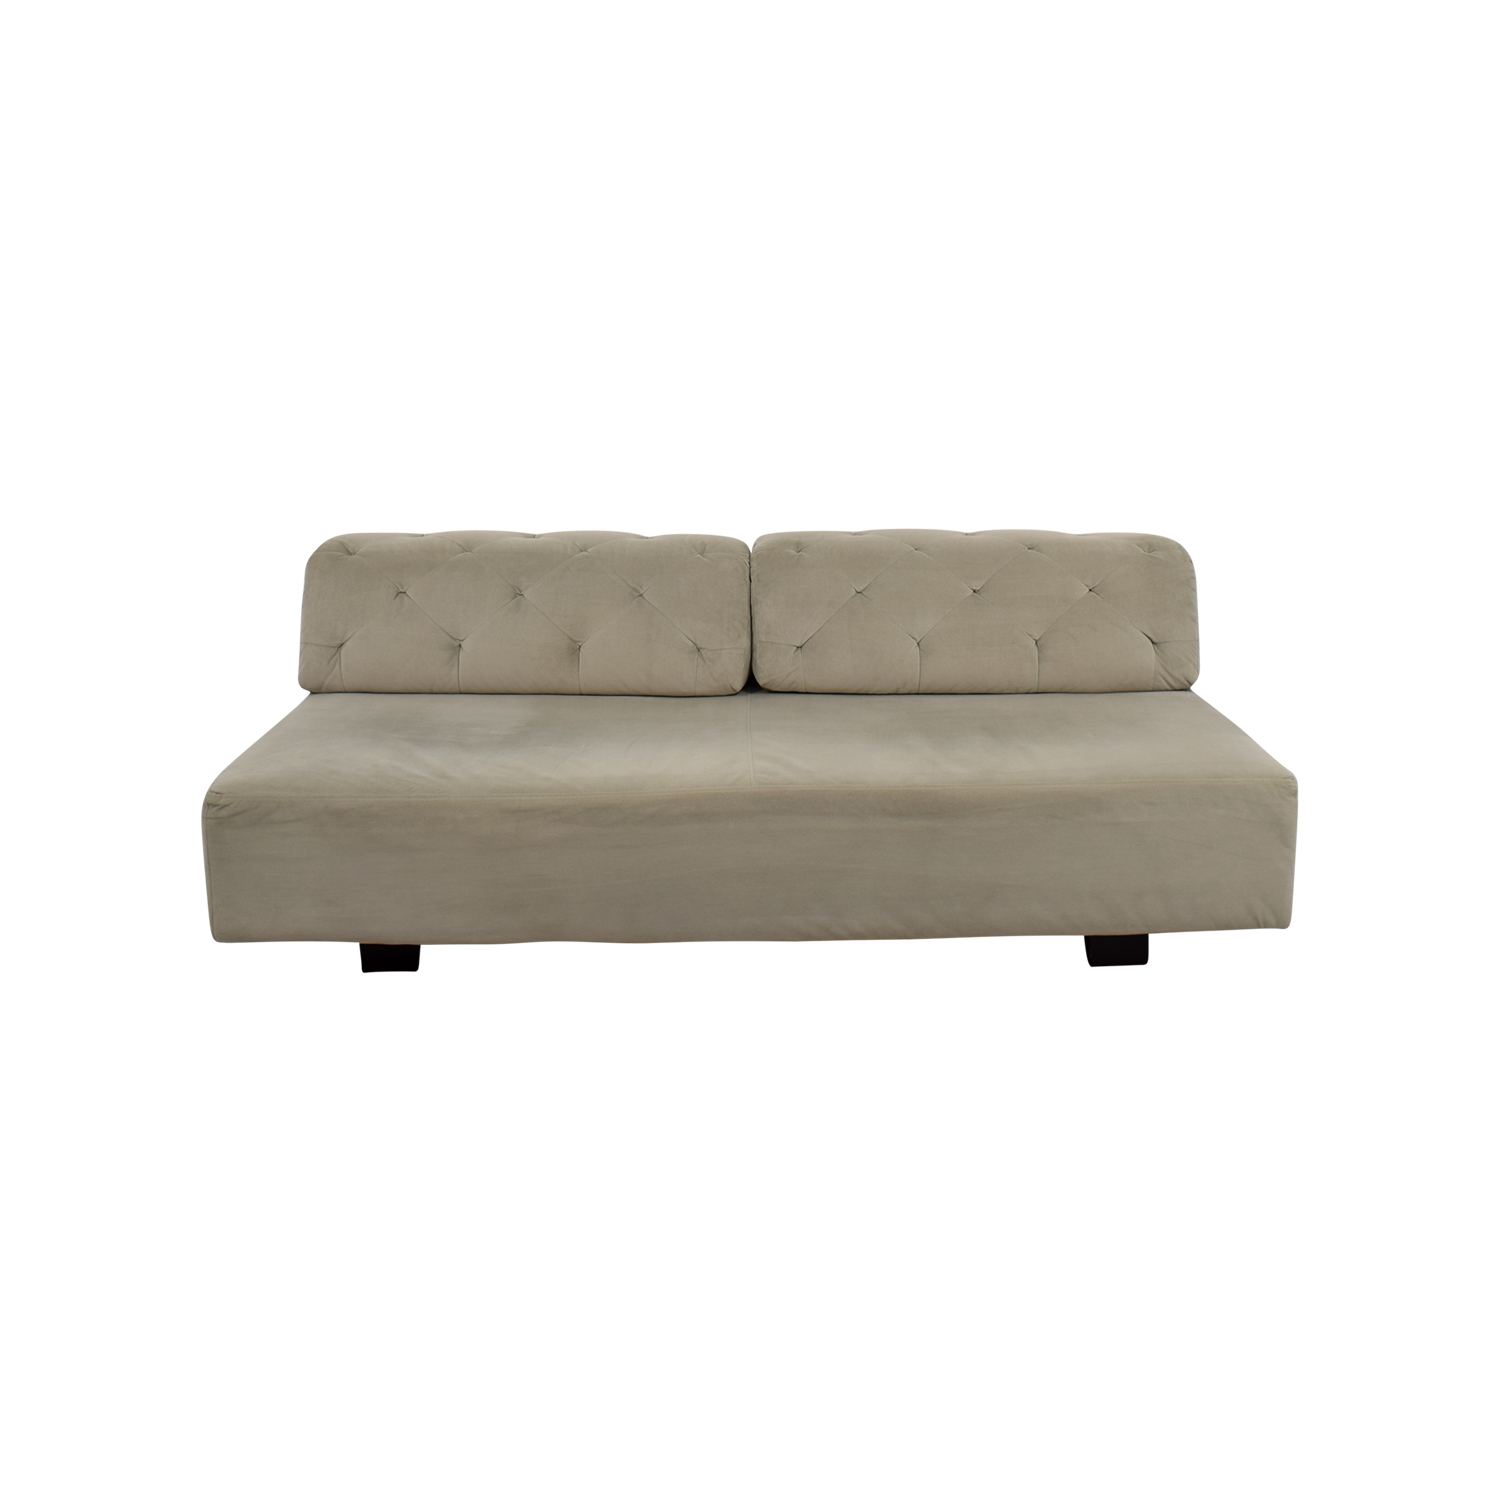 West Elm West Elm Tillary Beige Tufted Sofa nyc